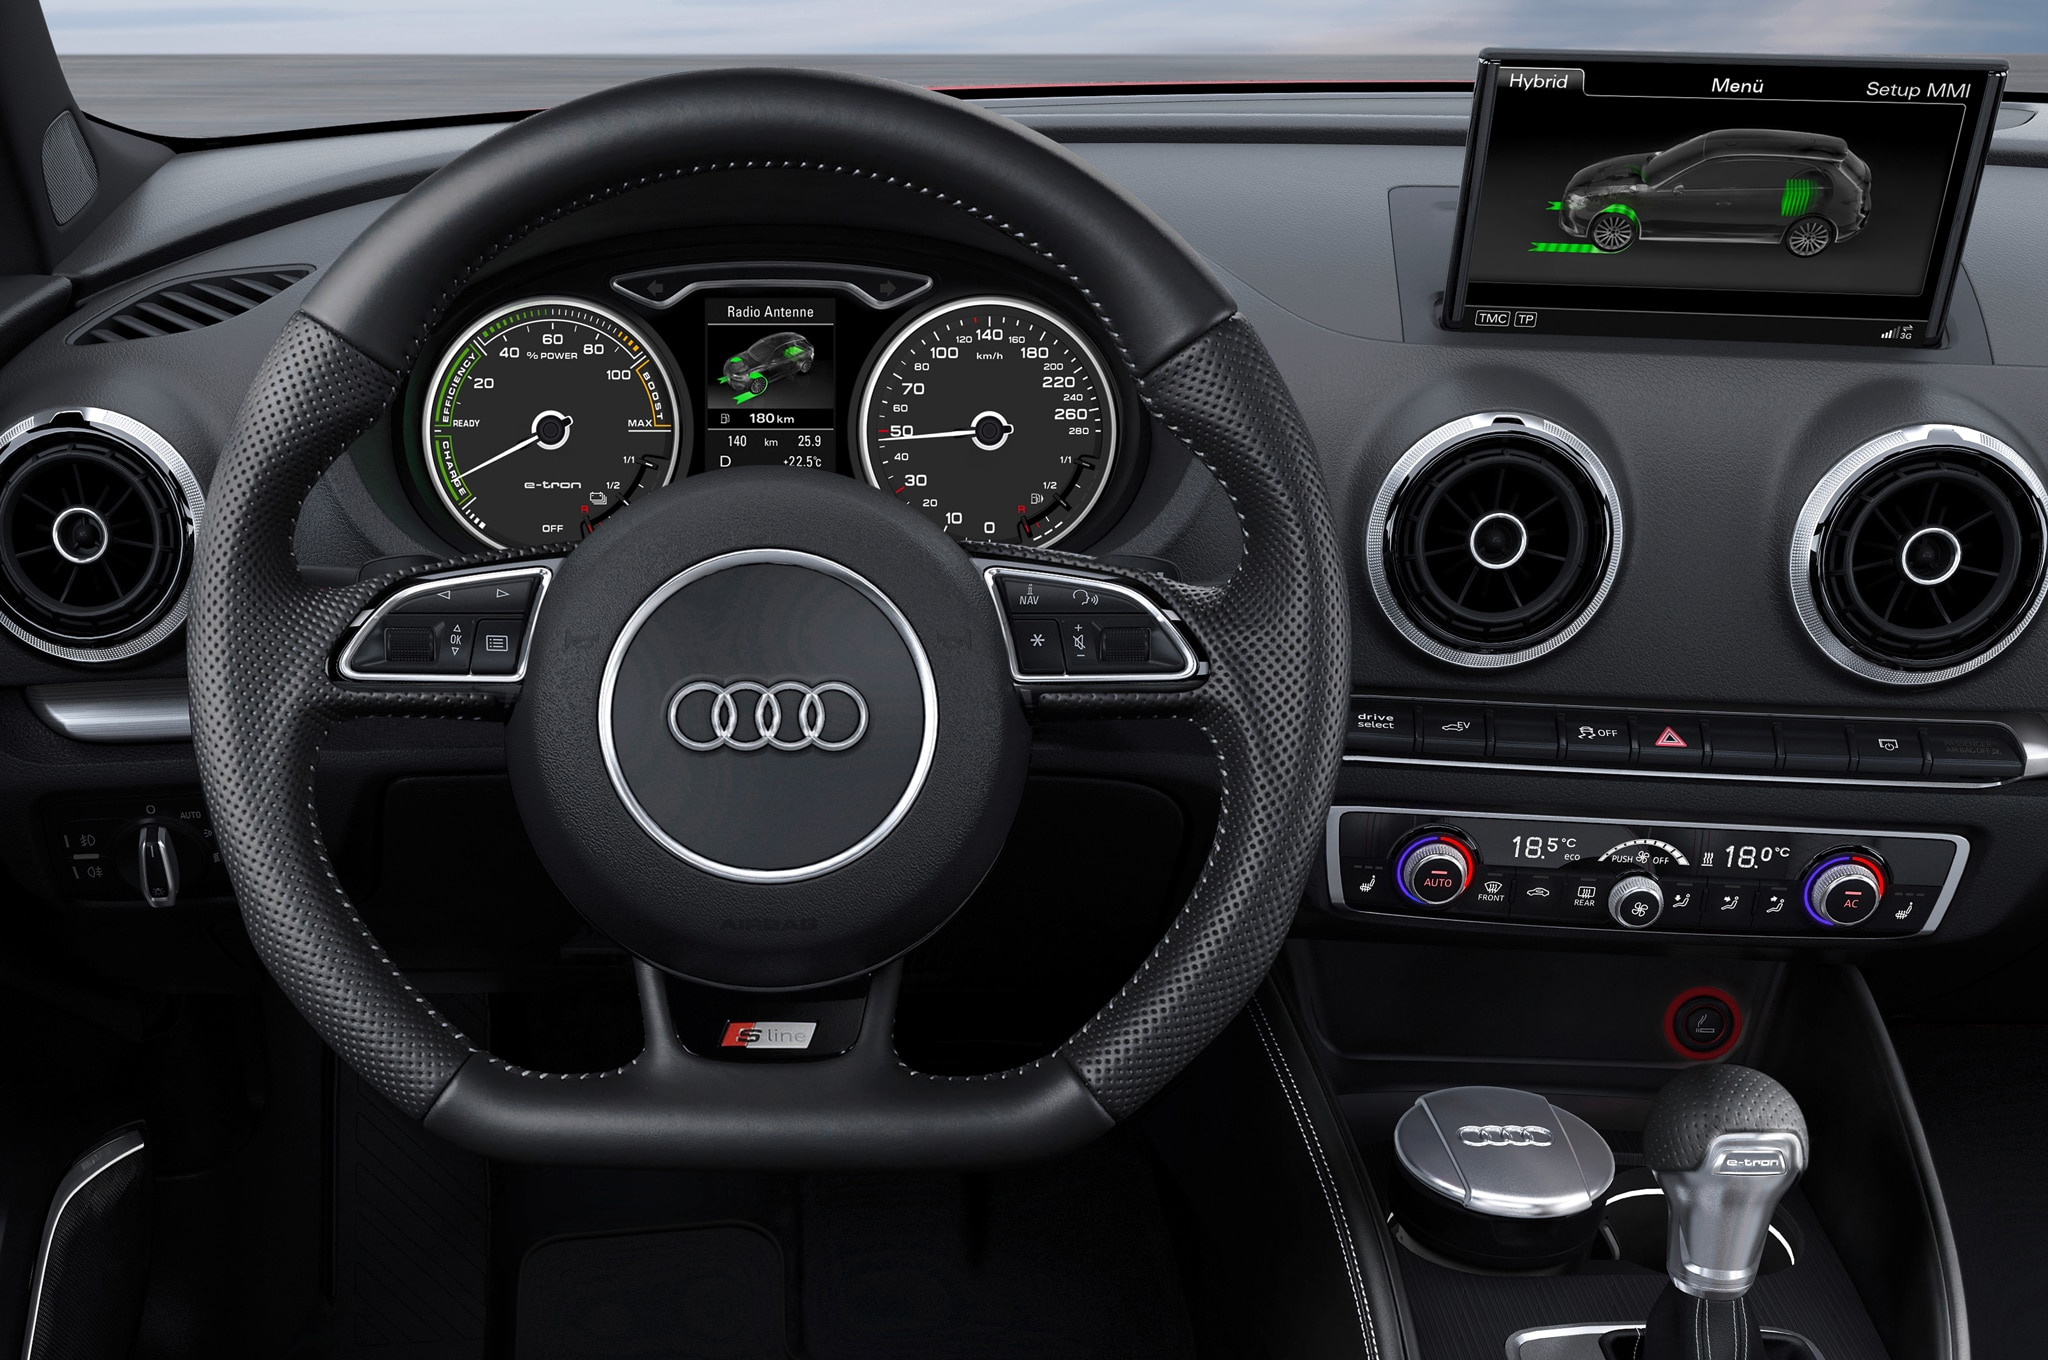 Audi A3 Sportback Interieur Hands On With The 2015 Audi A3 Sportback E Tron Phev Automobile